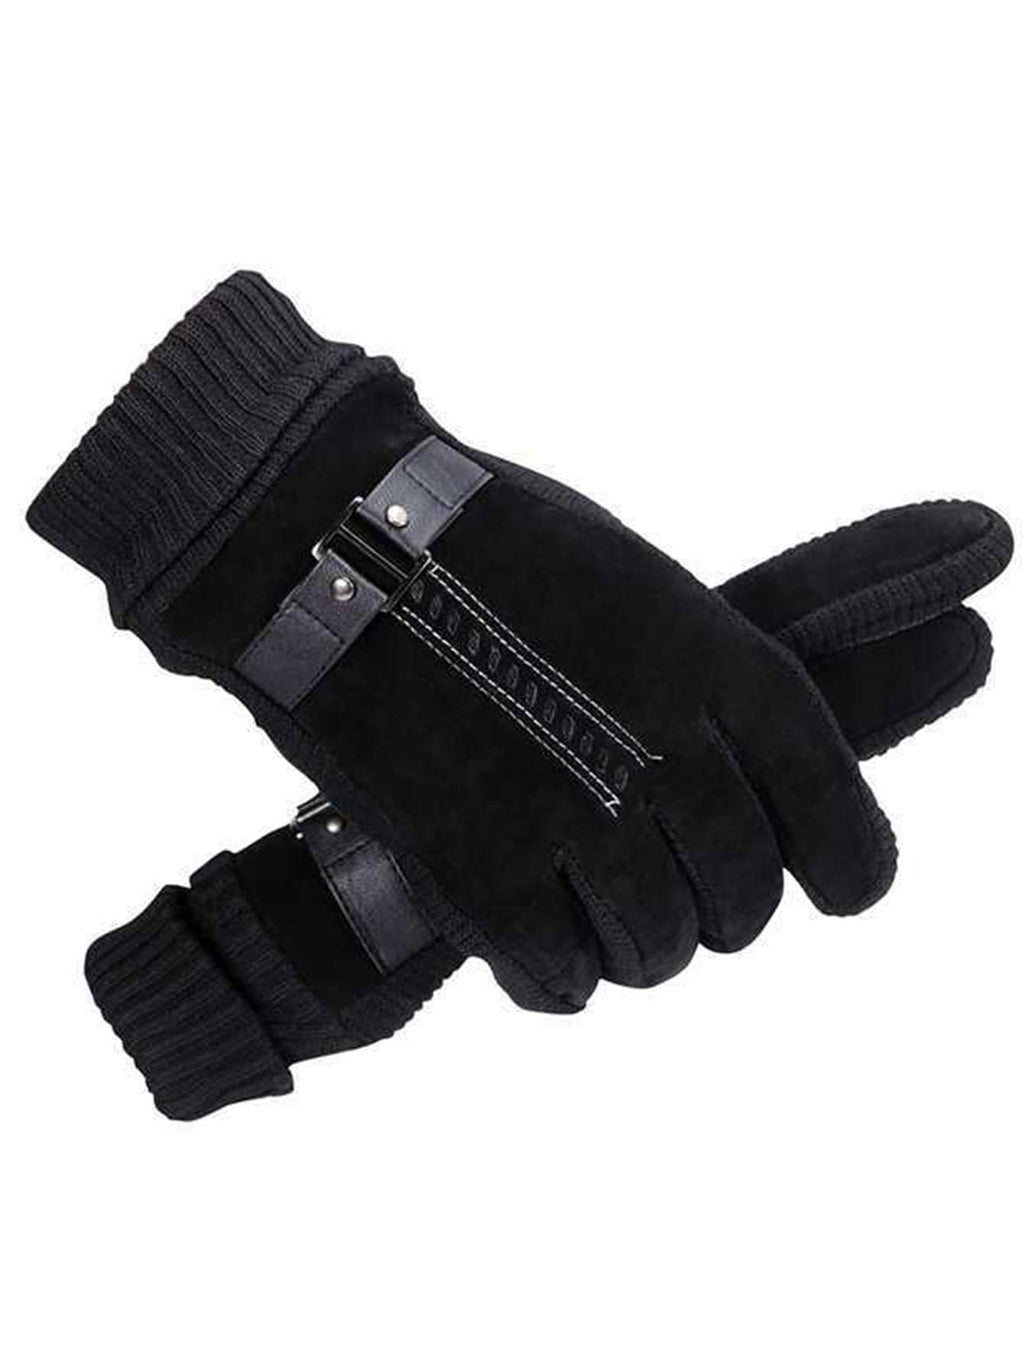 Men's Gloves - Contrast Knit Gloves 1pair